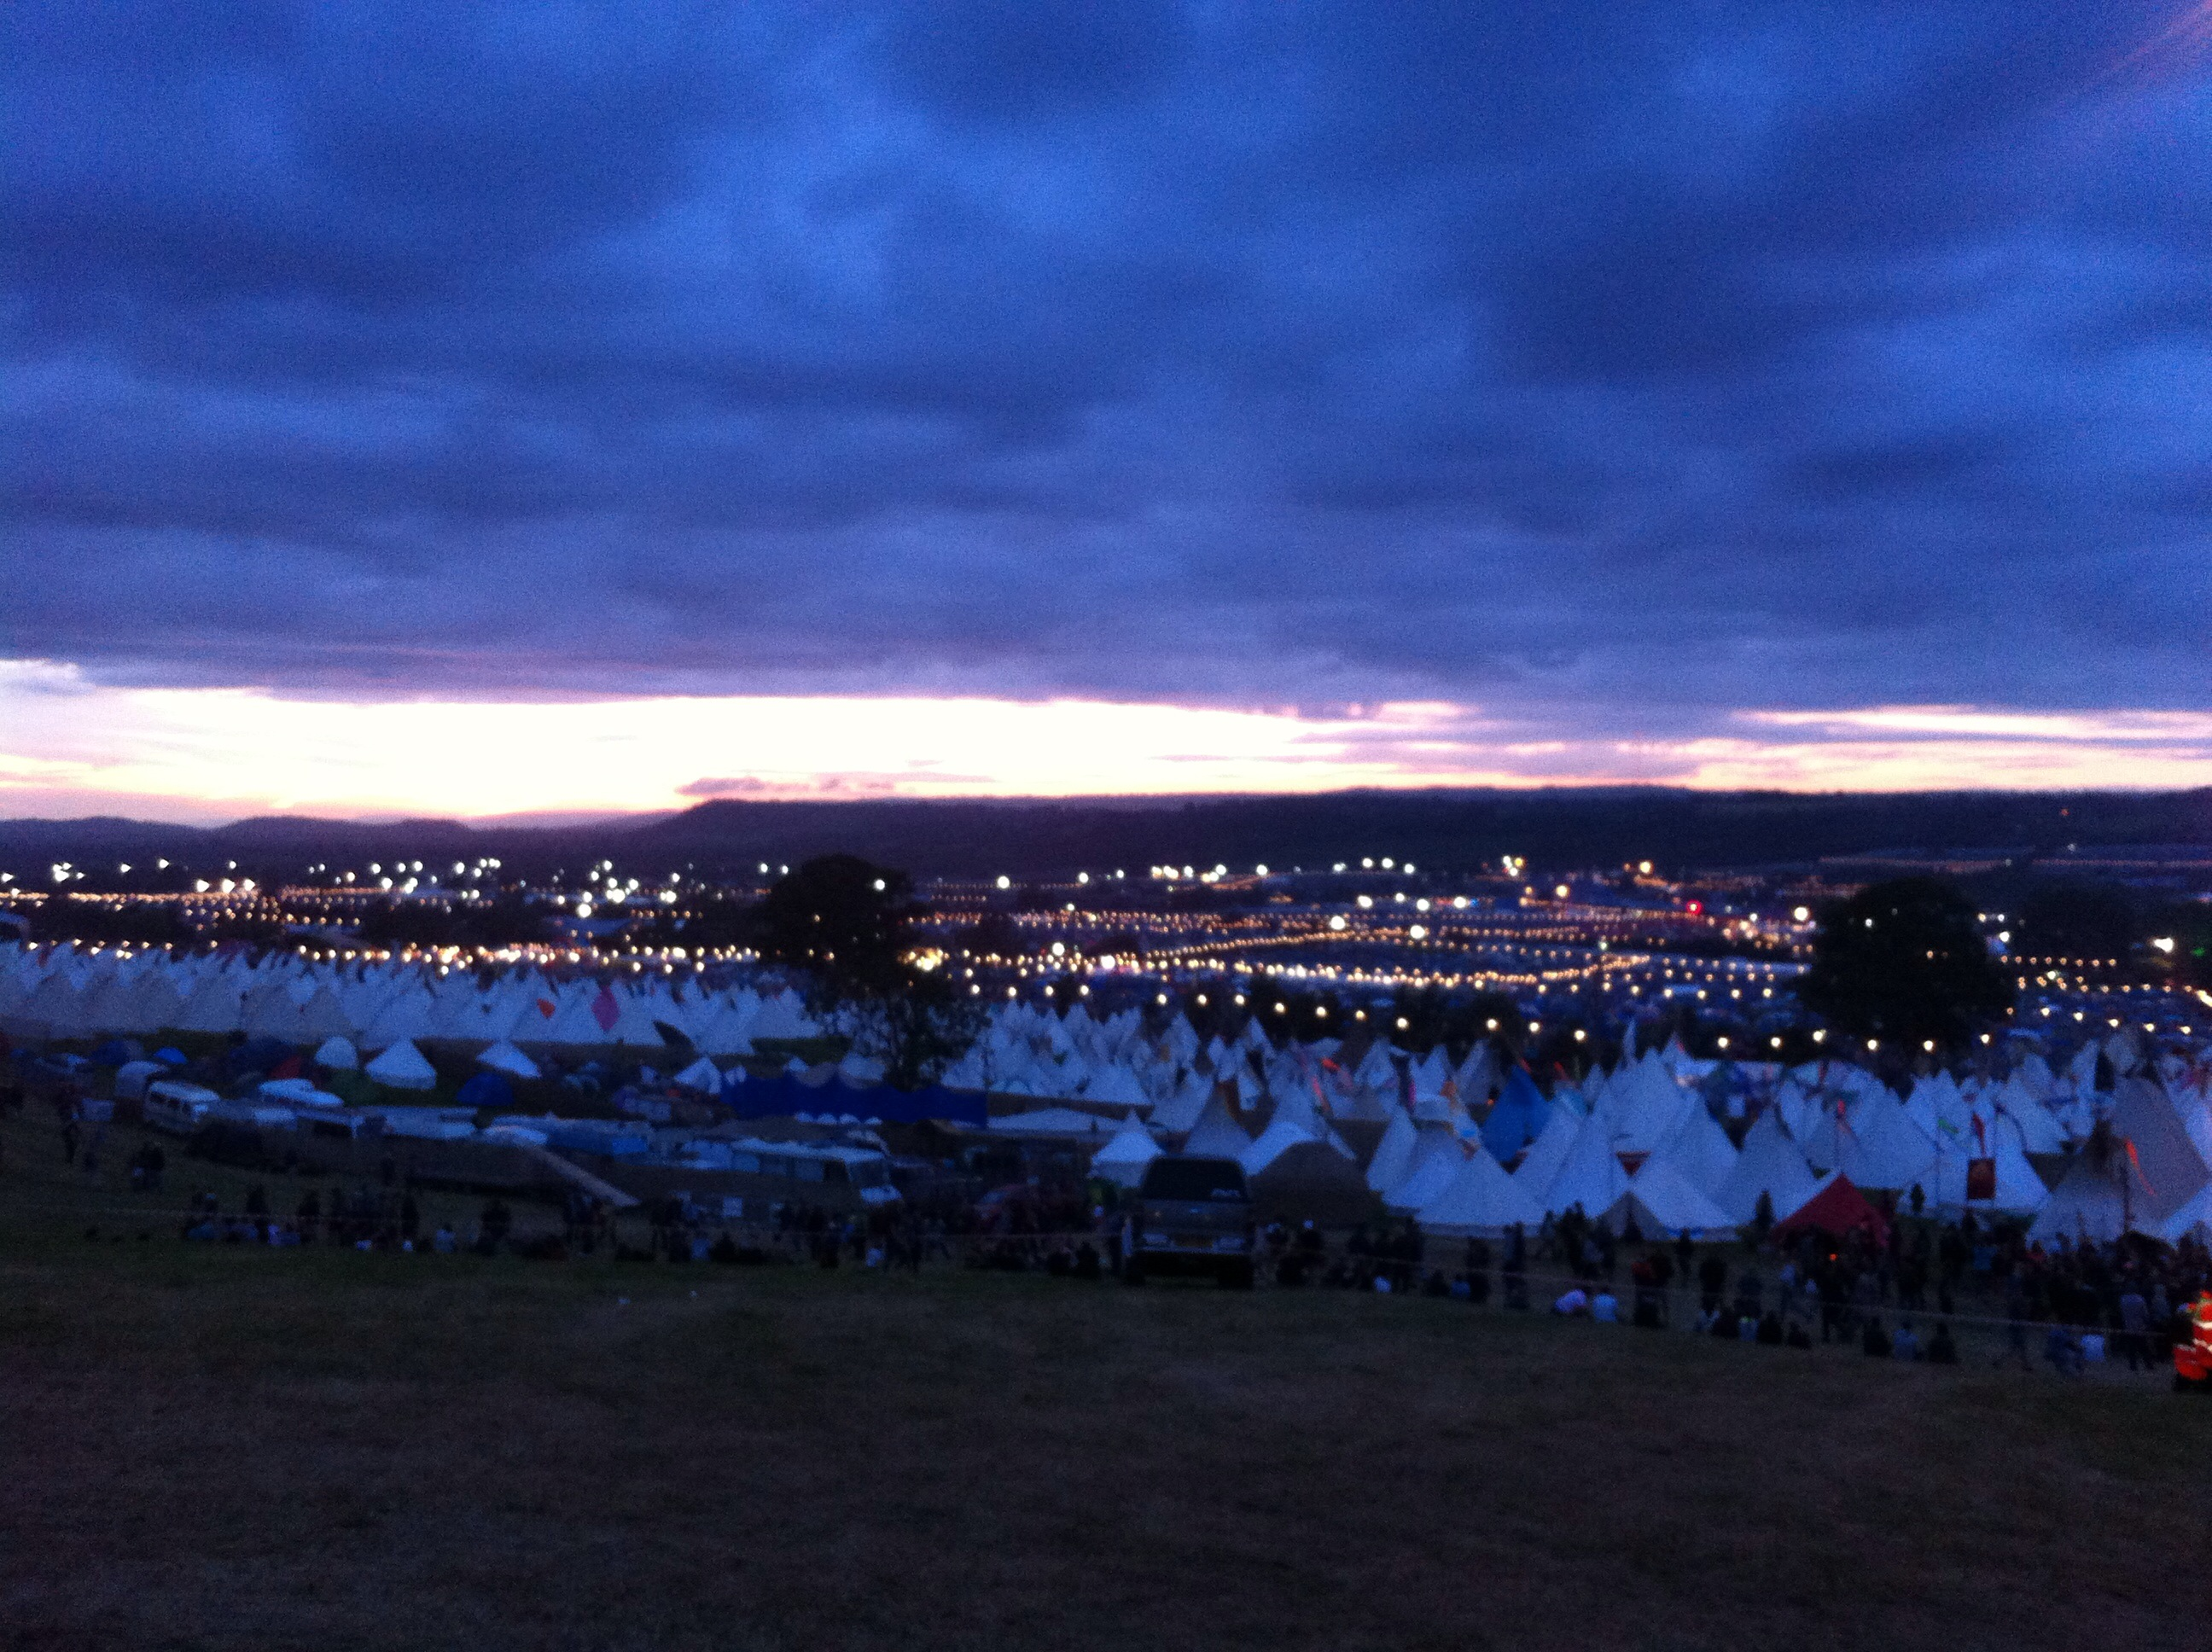 Walking back up toward Worthy View the Tipi Field offered temptations to stay out longer with live music being played in some of the tents. & Bursting My Glastonbury Bubble! u2013 The Messy Cook Travels